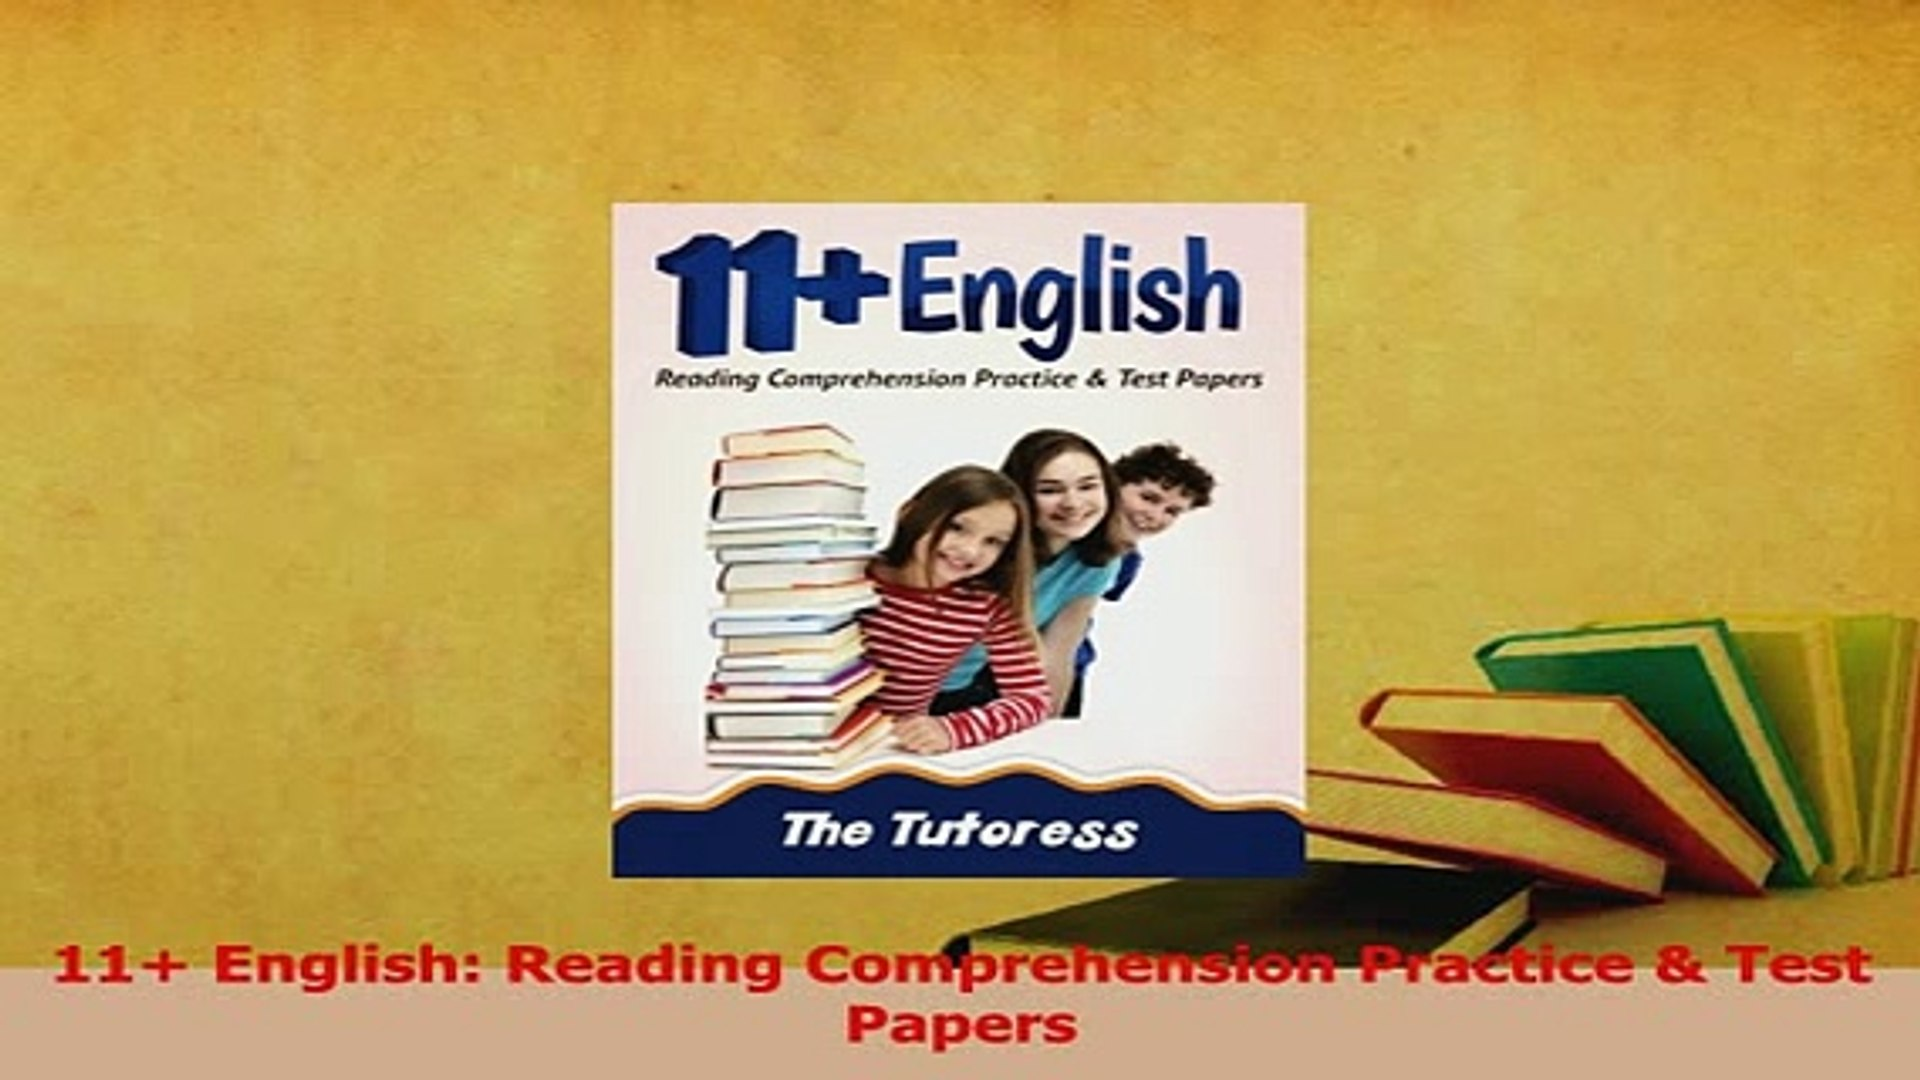 - PDF 11 English Reading Comprehension Practice Test Papers Read